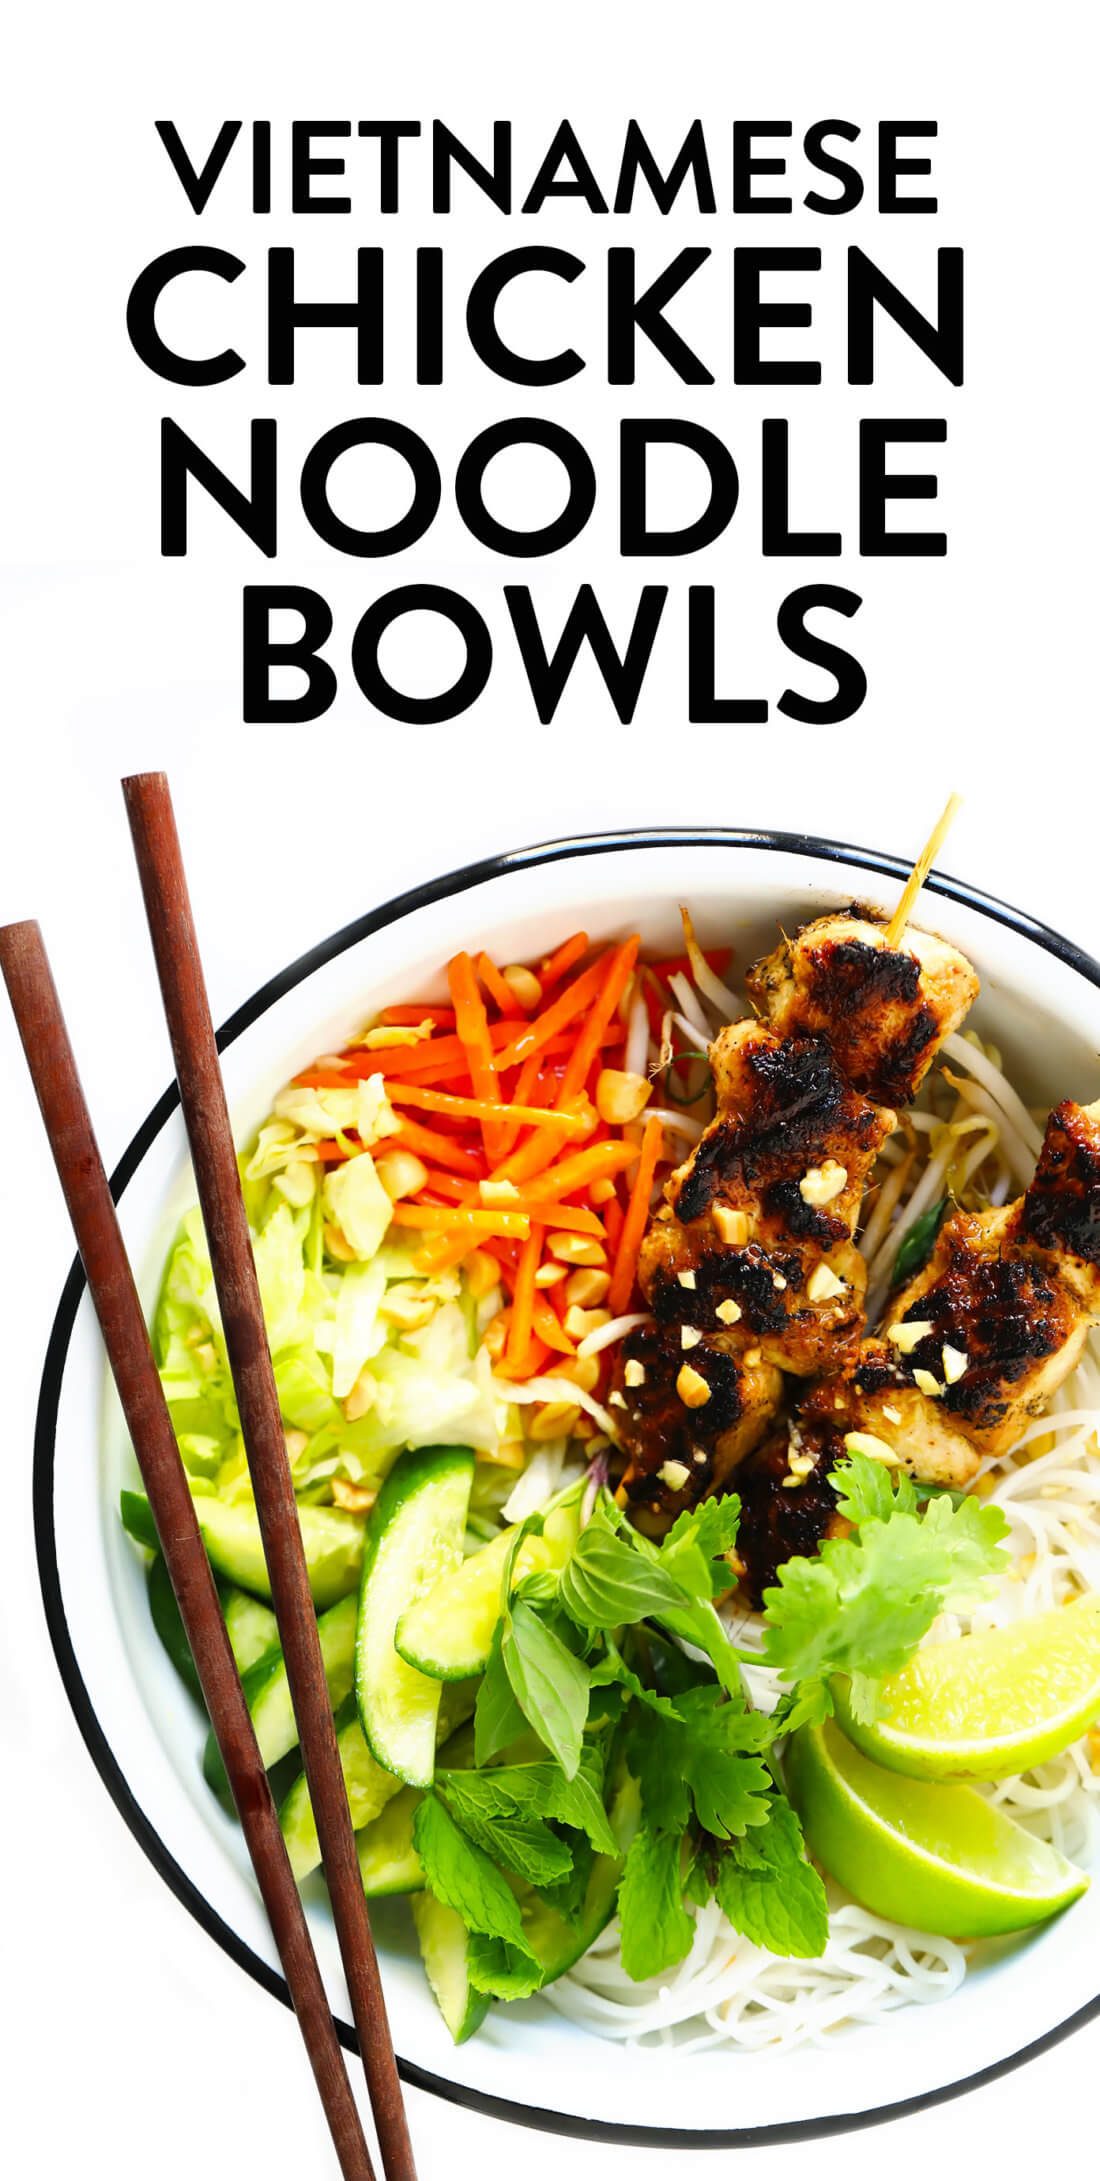 Vietnamese Chicken Noodle Bowl Recipe